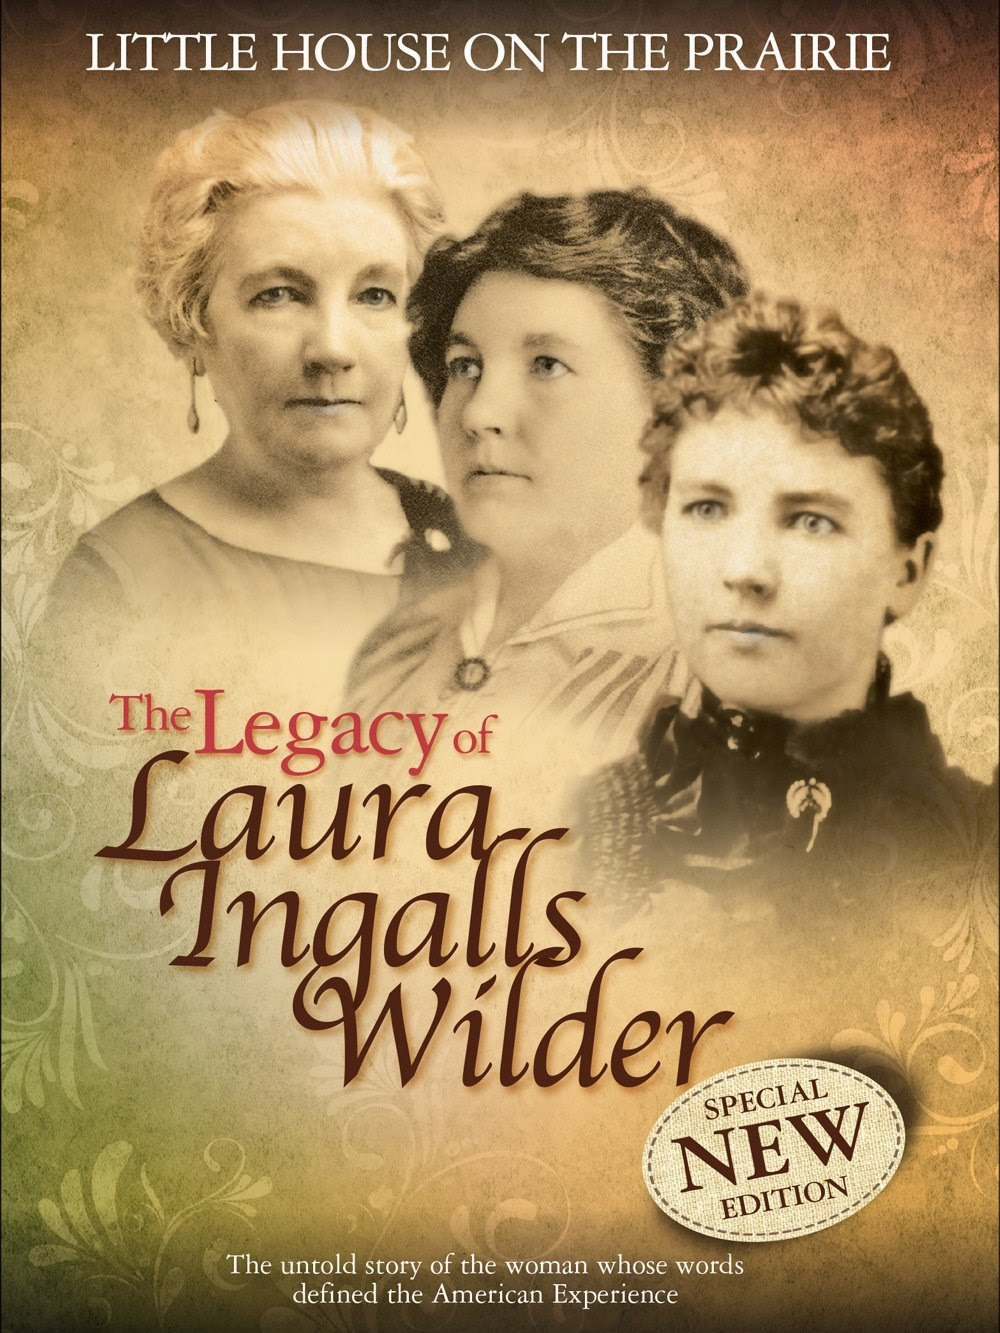 New documentary: The Legacy of Laura Ingalls Wilder.